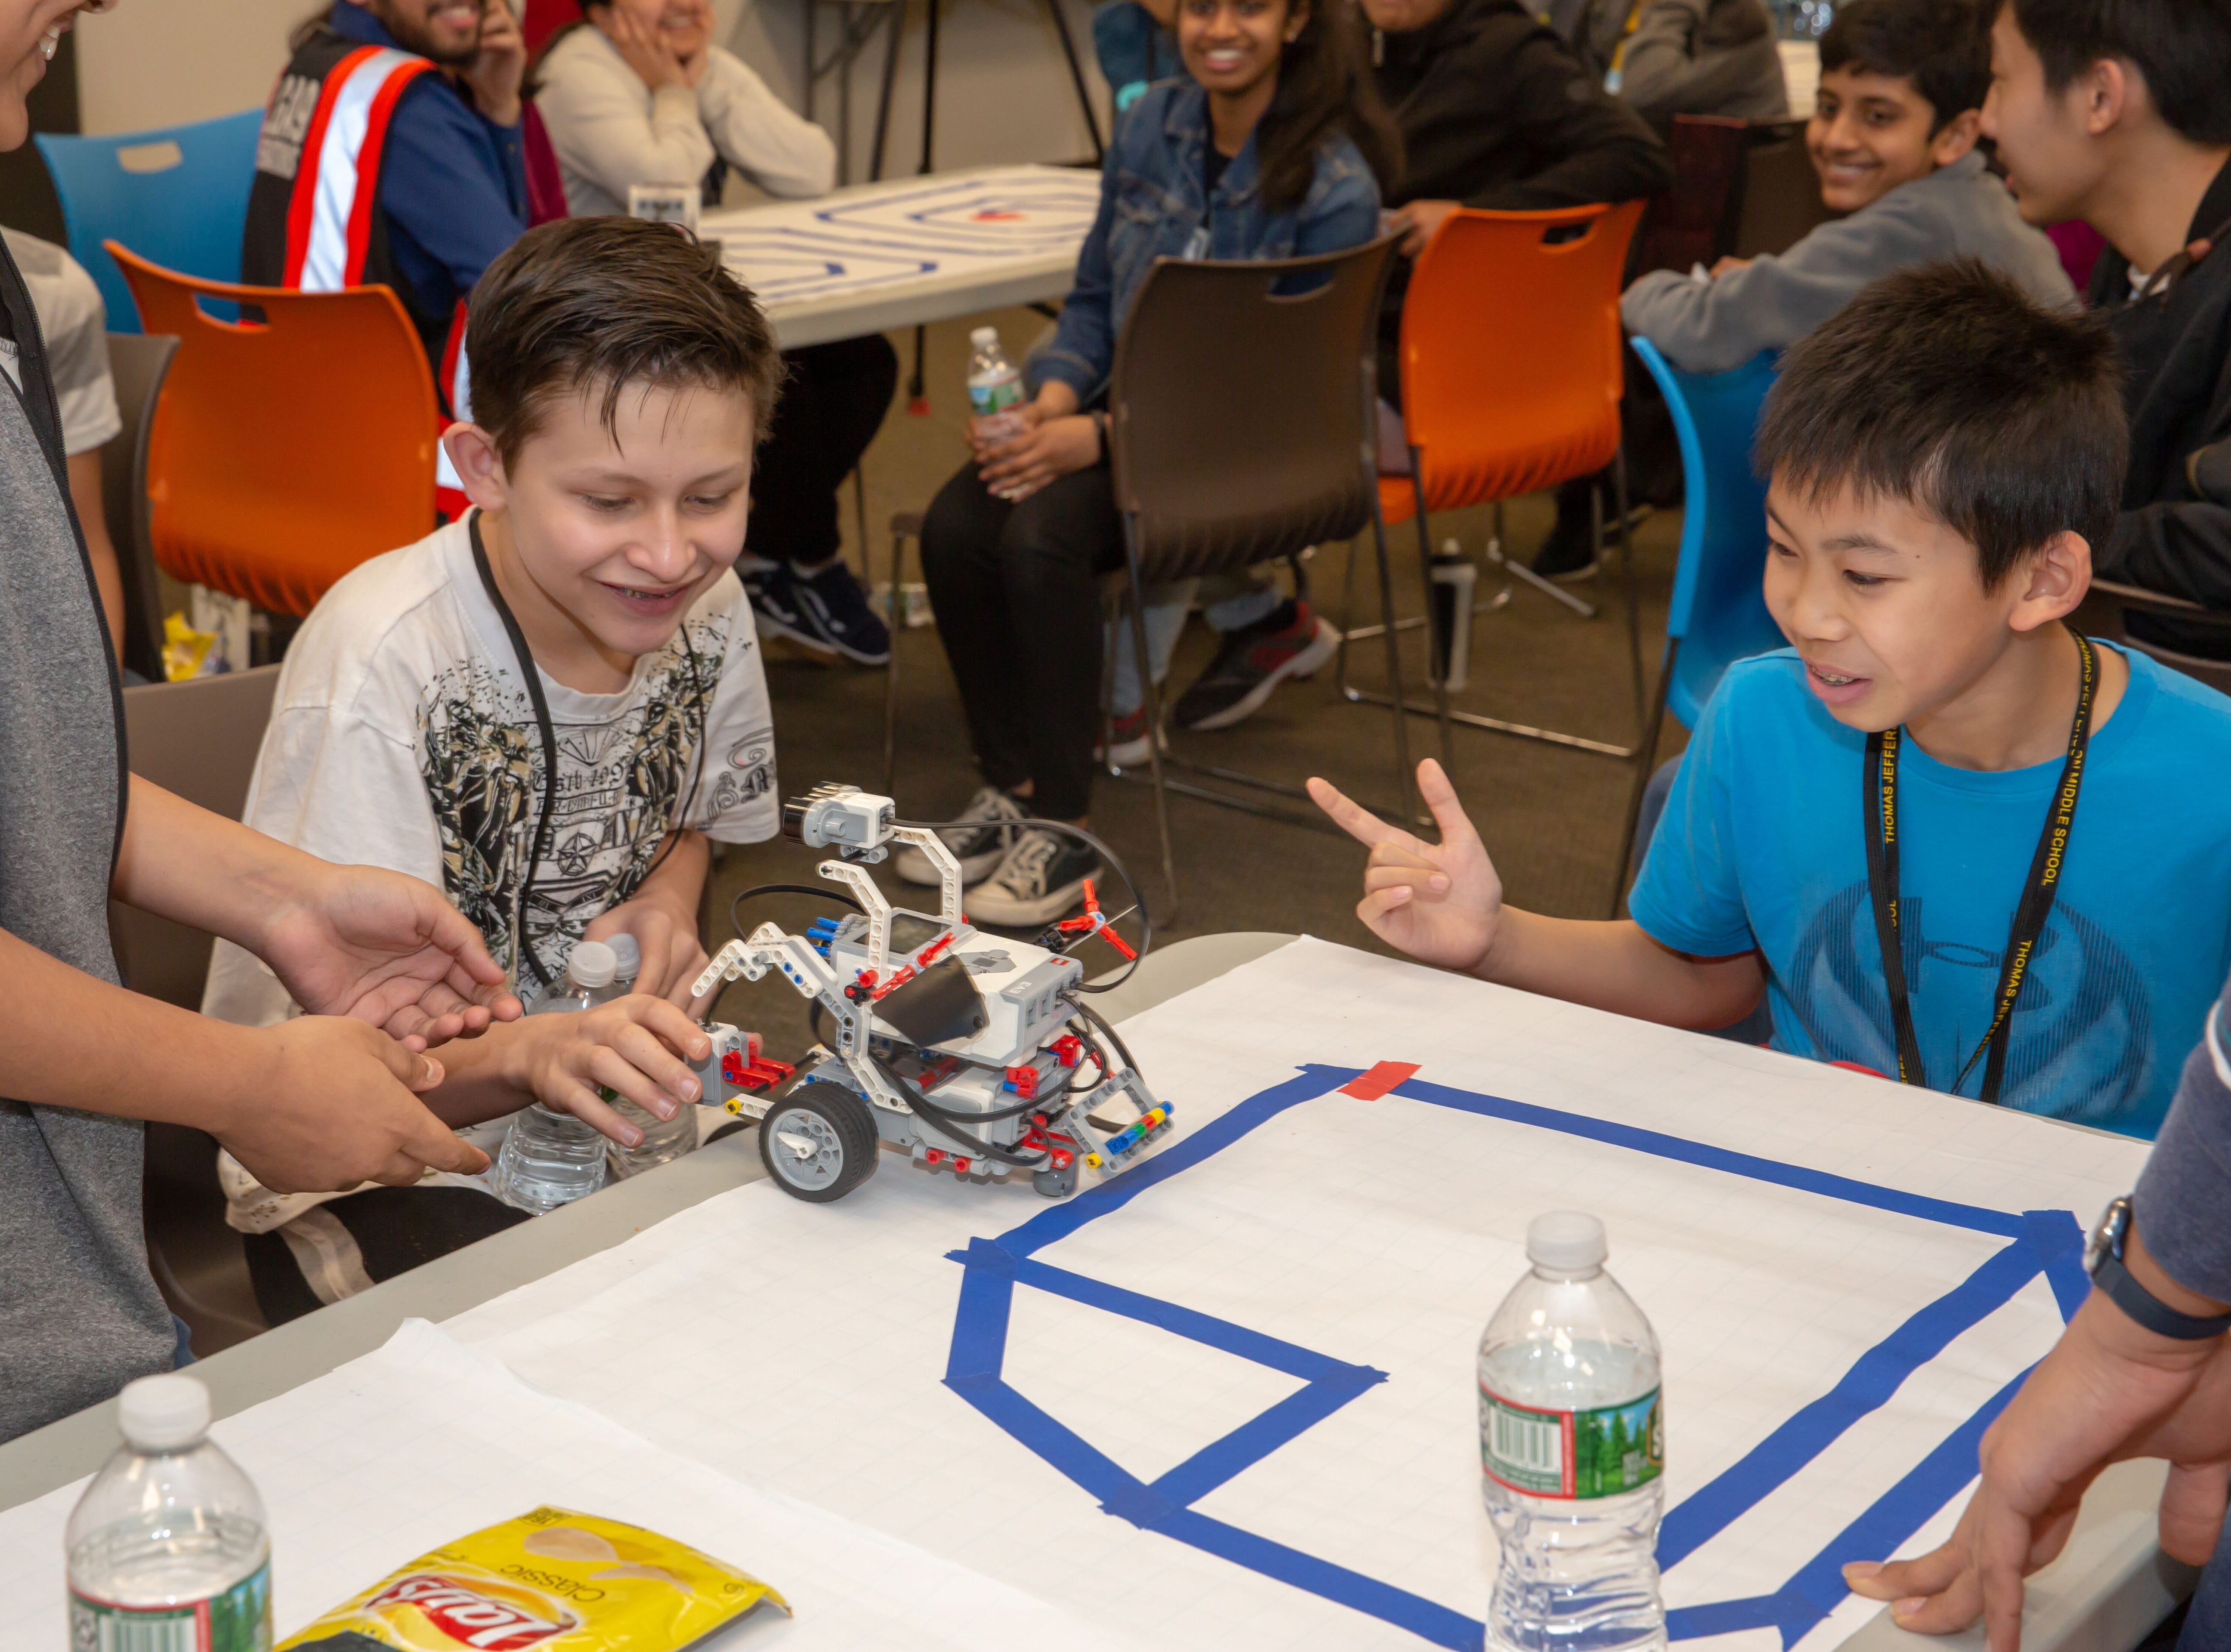 Amazon celebrates National Robotics Week with local middle schools in Edison